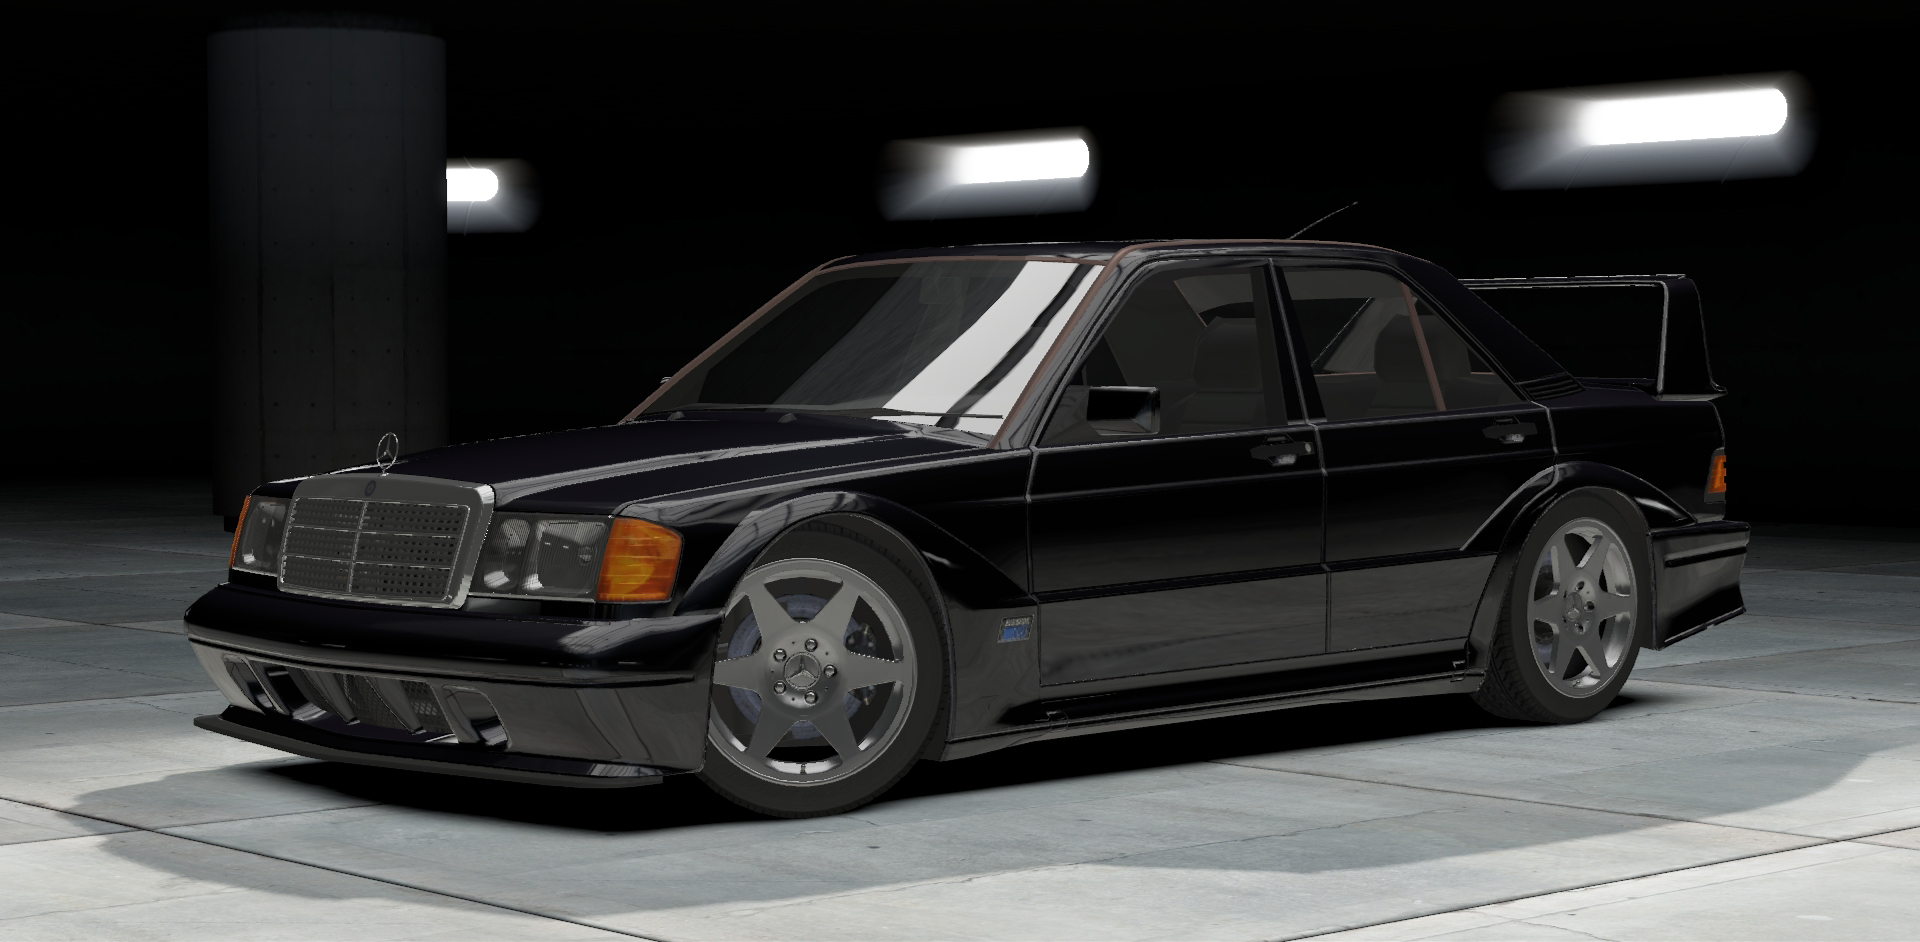 Mercedes-Benz 190E 2.5-16 Evolution 2